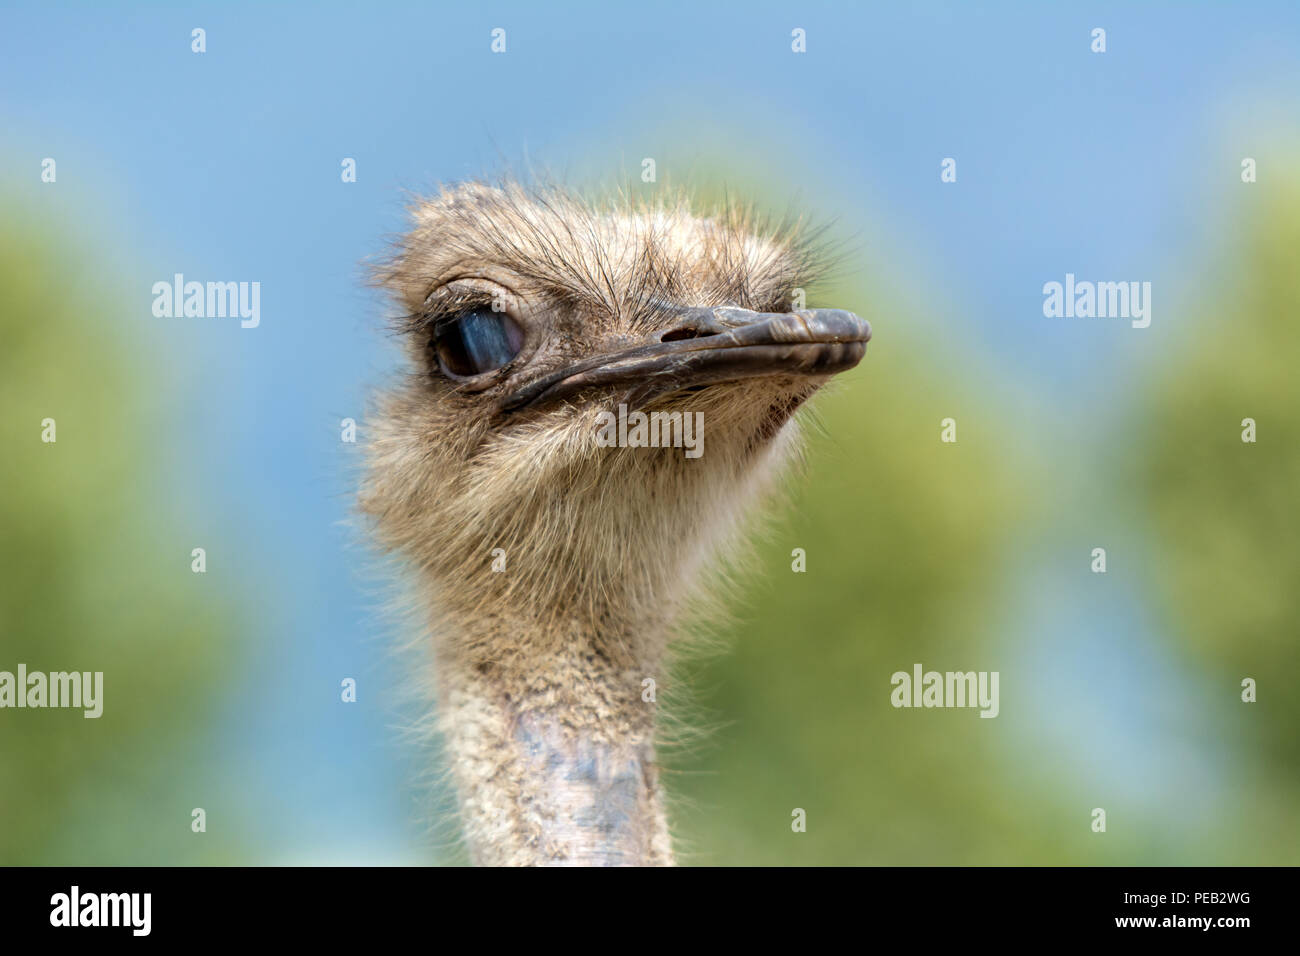 The head of an ostrich closeup on a blurred background. Stock Photo